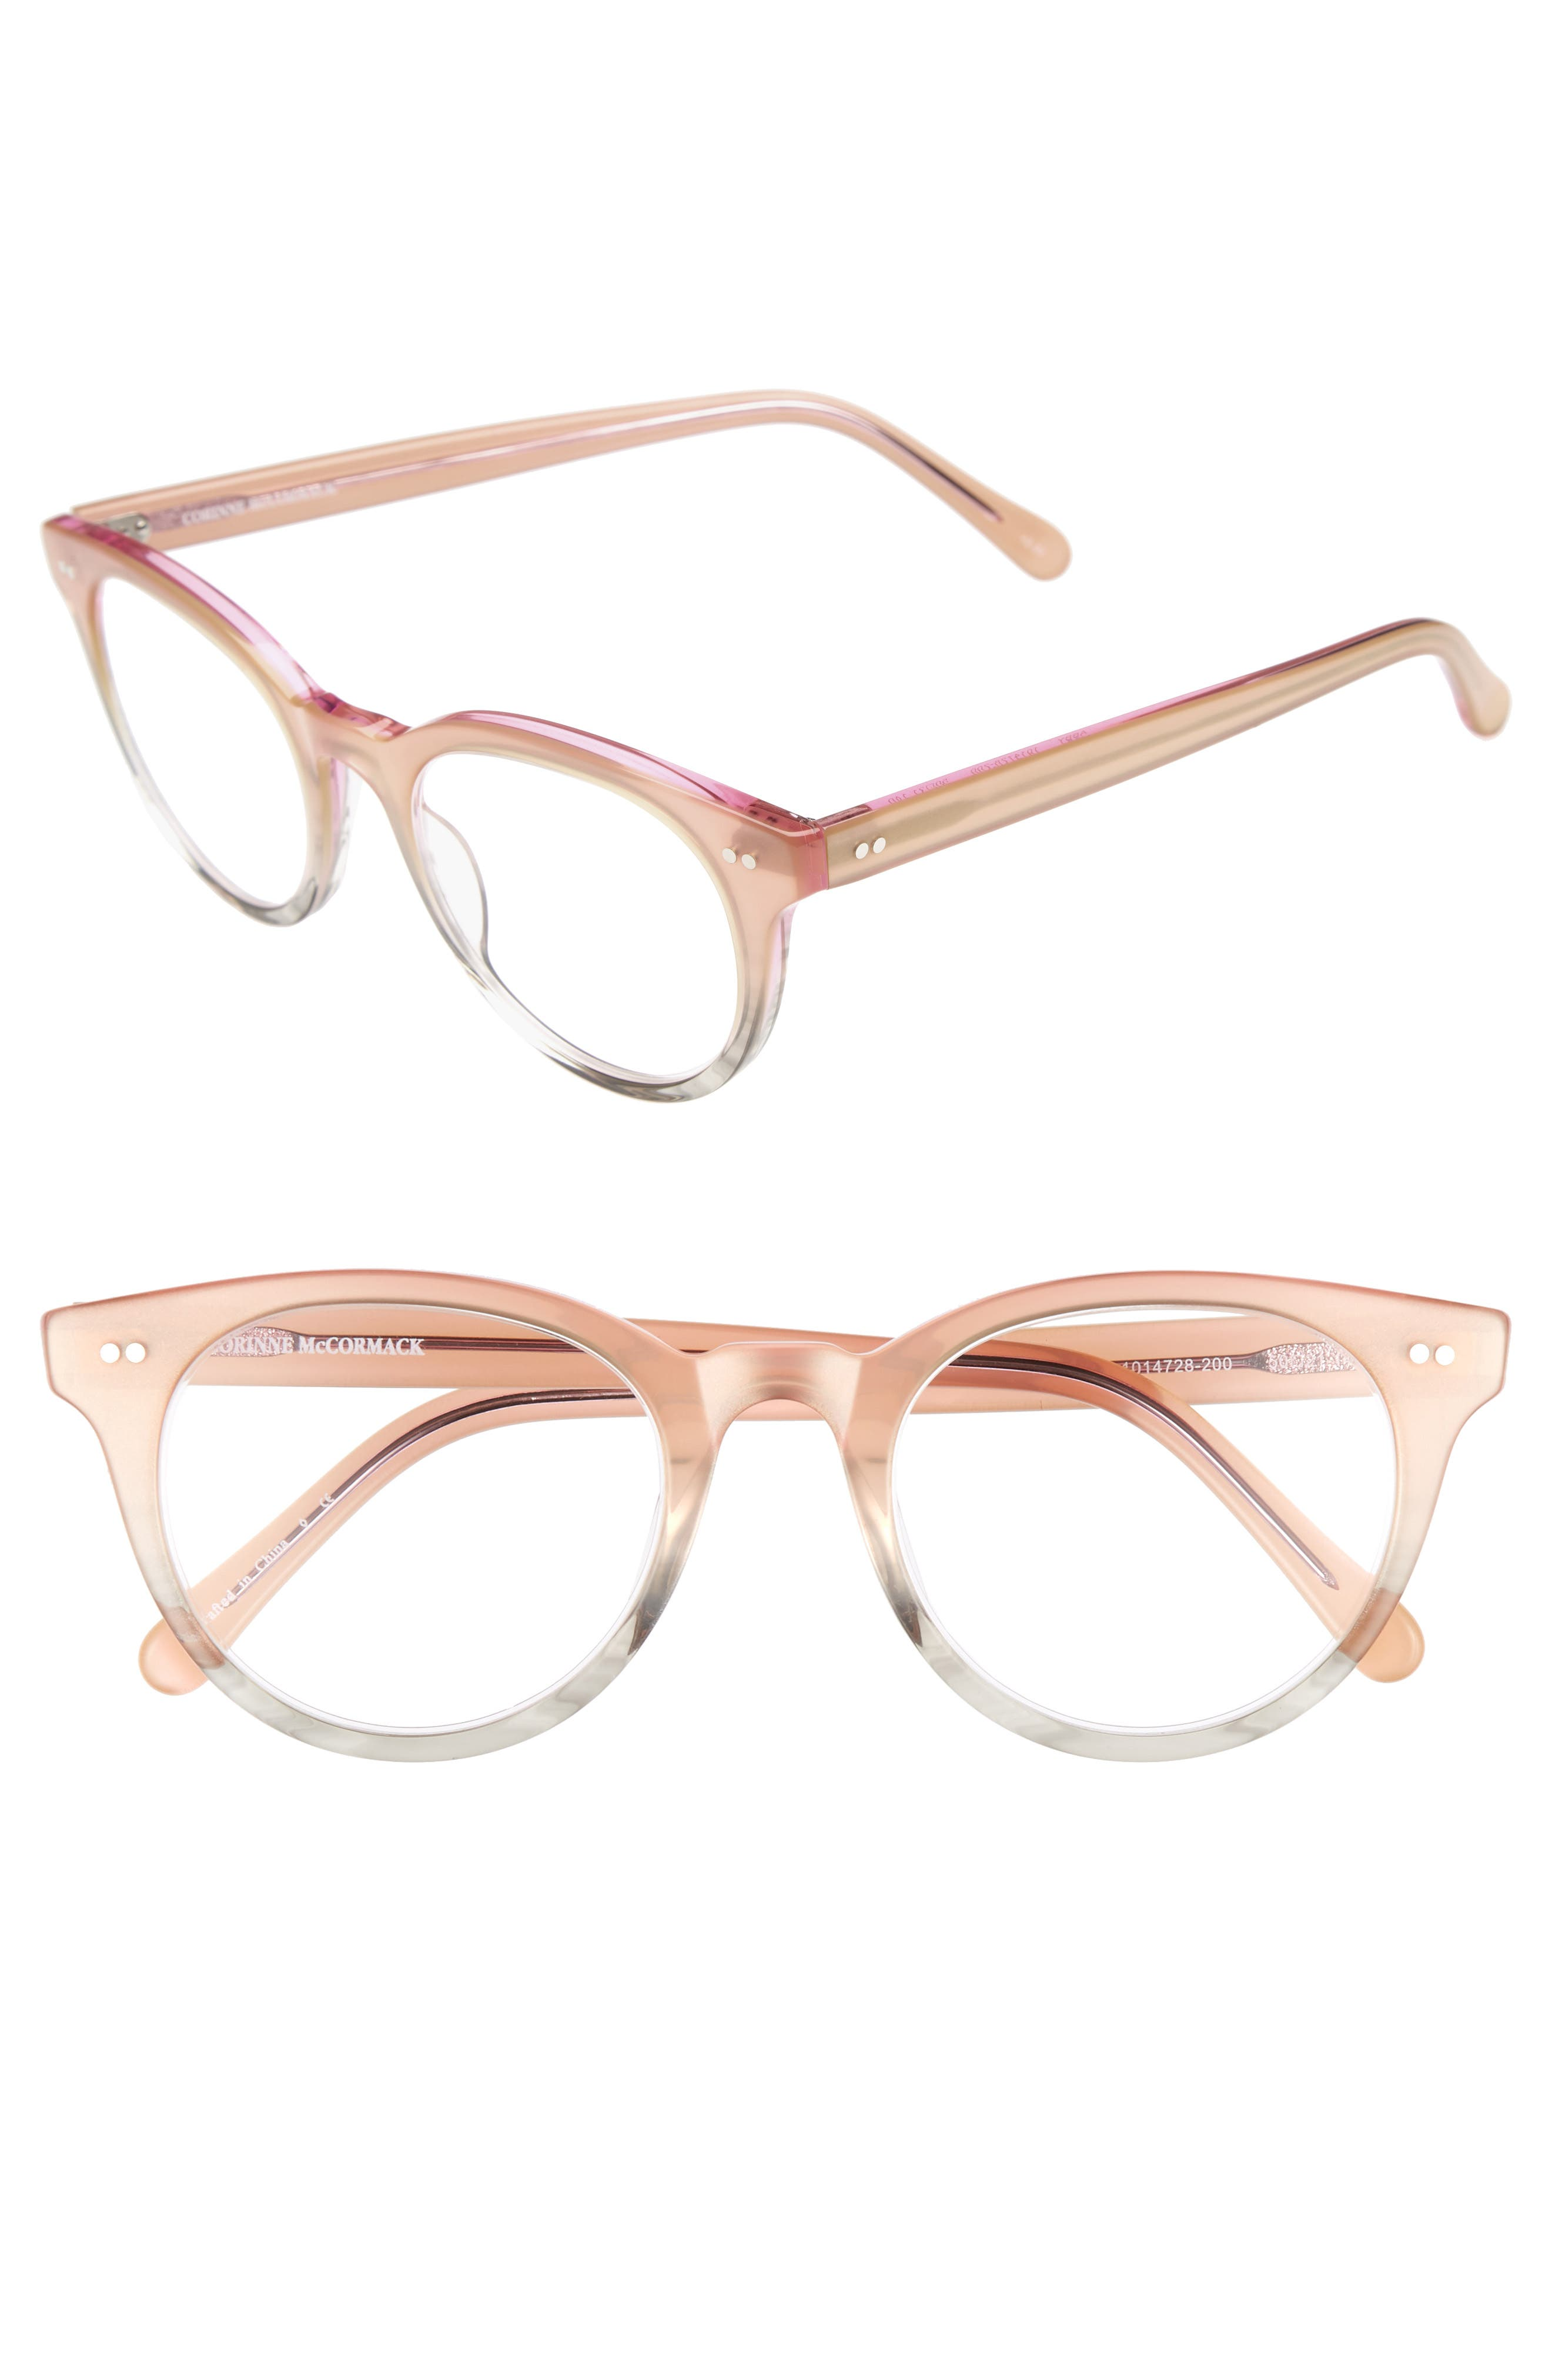 Abby 50mm Reading Glasses,                         Main,                         color, Pink/ Grey